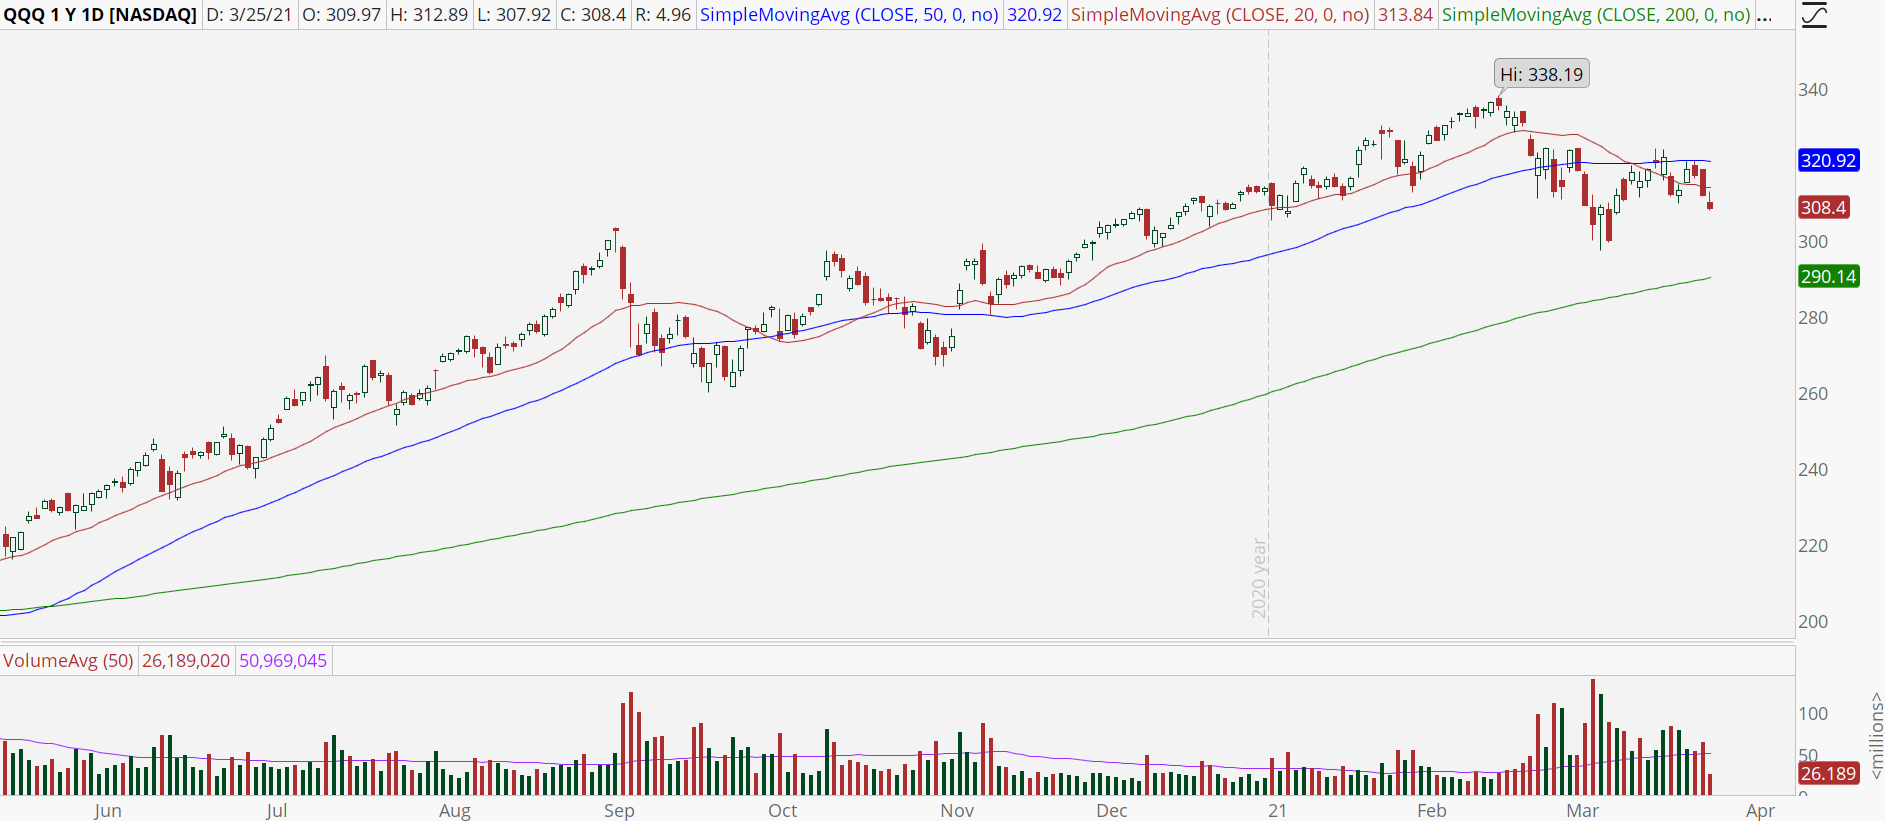 Invesco QQQ Trust (QQQ) daily chart with break of 50-day moving average